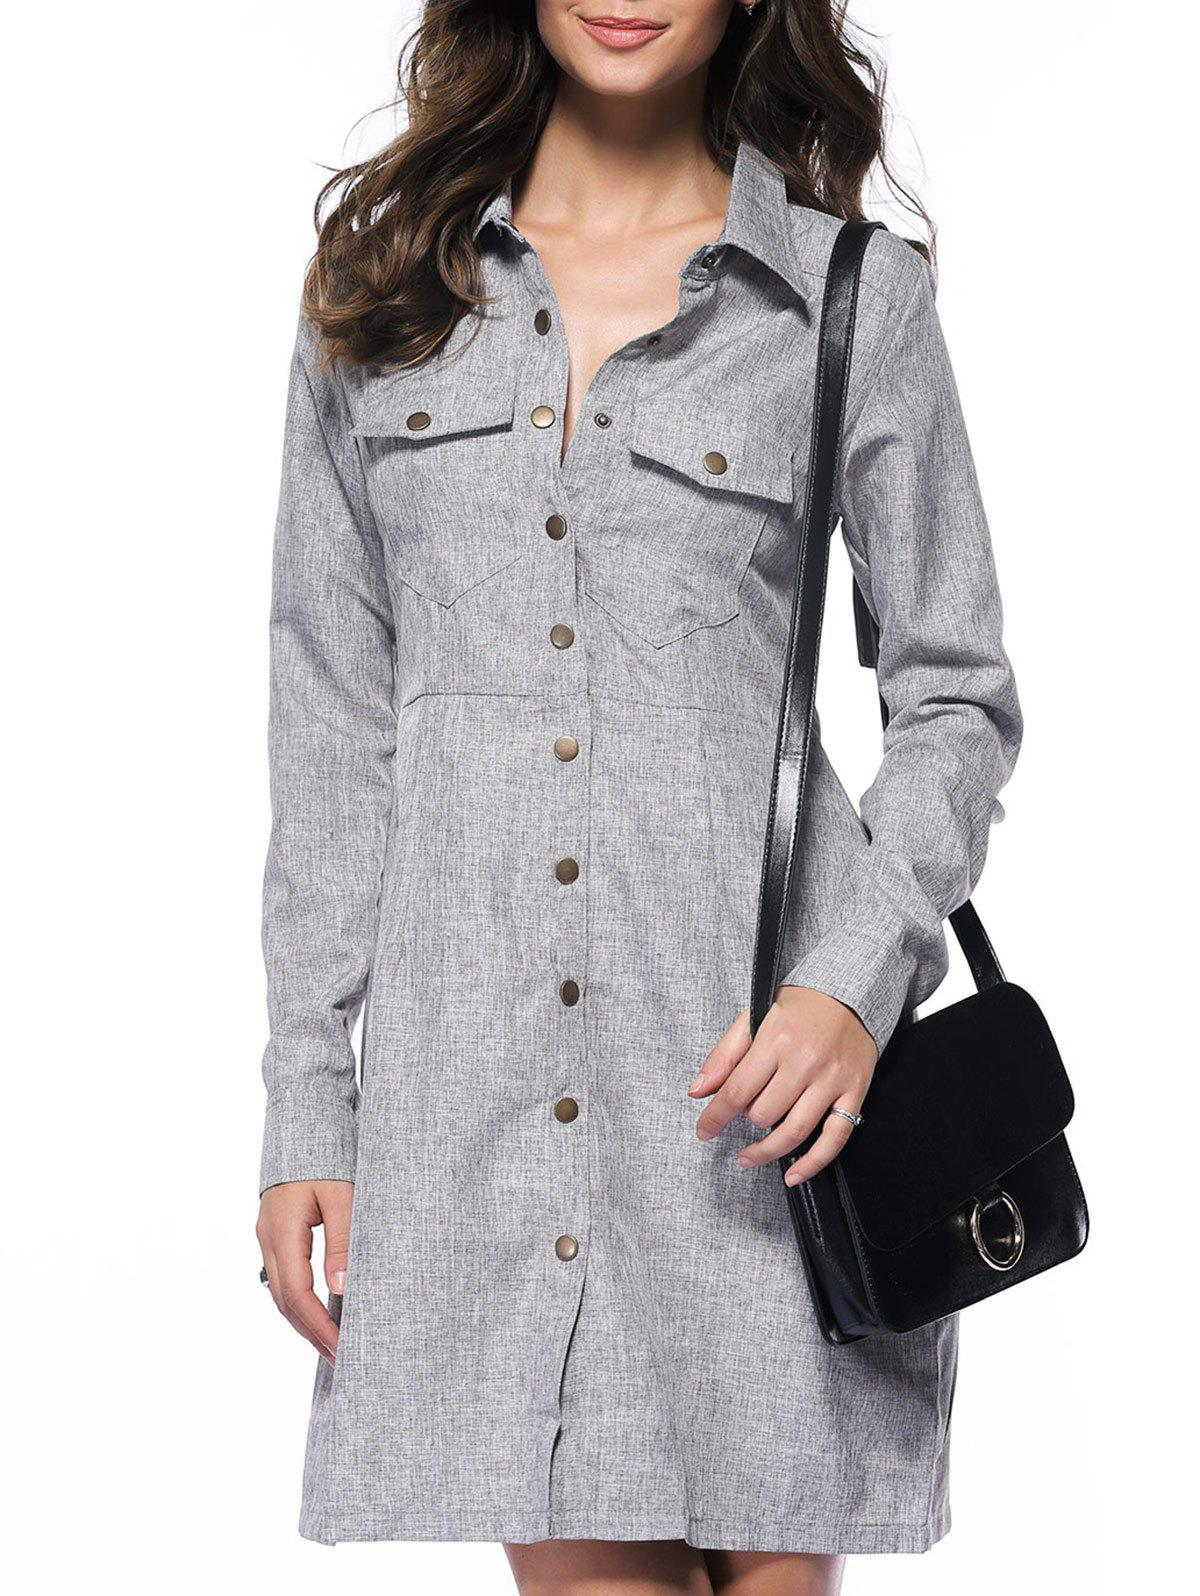 Simple Long Sleeve Marled Pocket Shirt Dress - GRAY 2XL